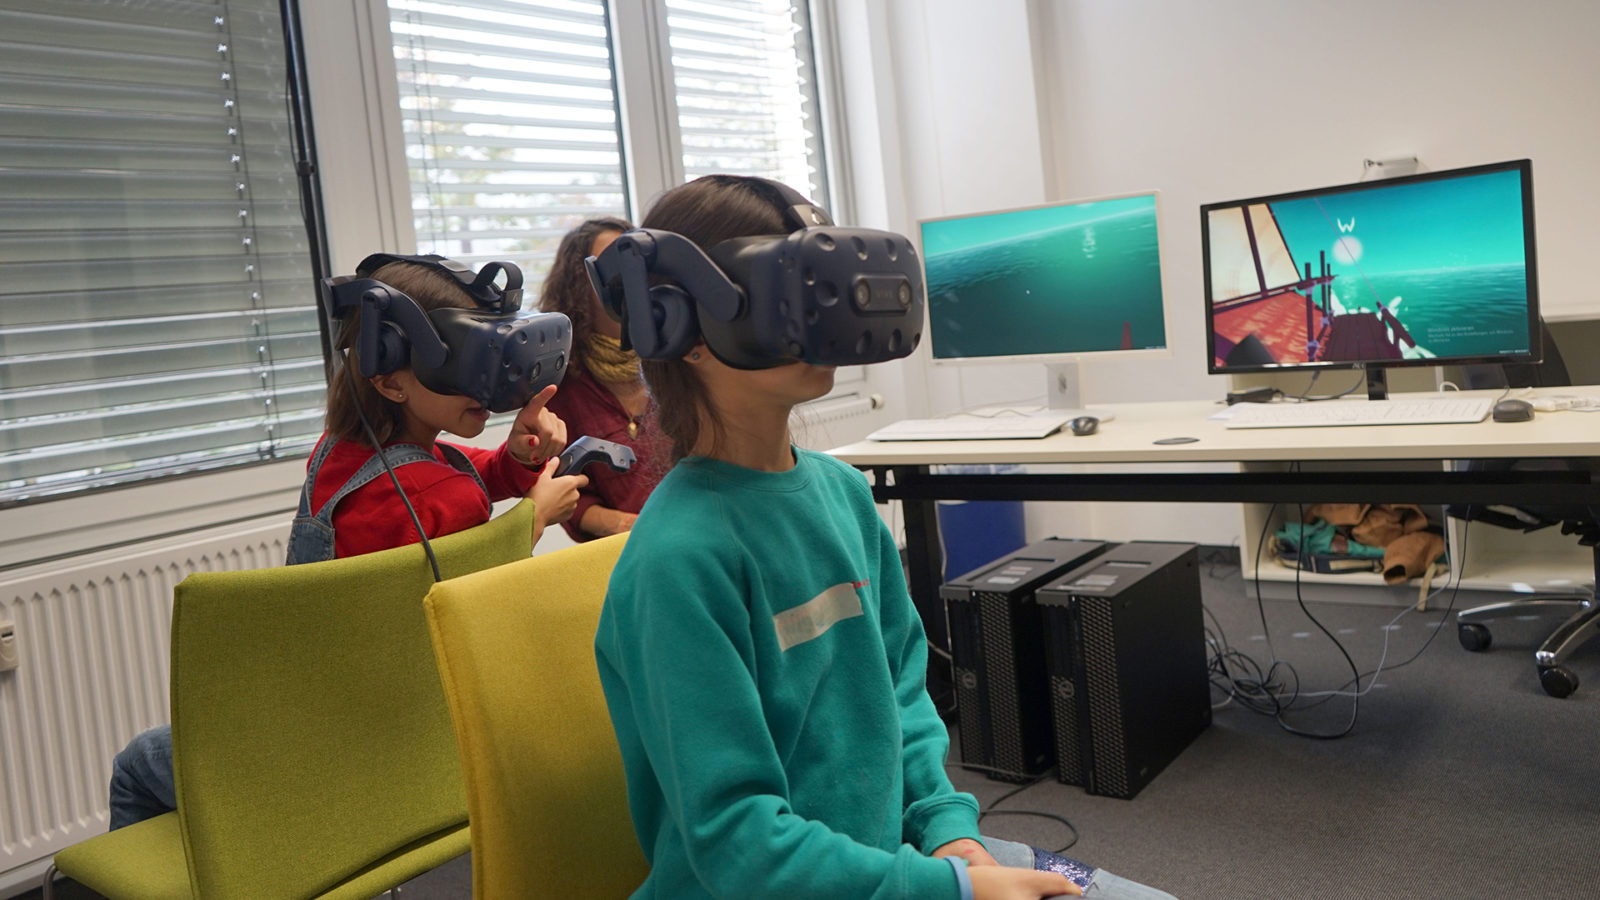 Kinder testen ein Virtual Reality-Spiel